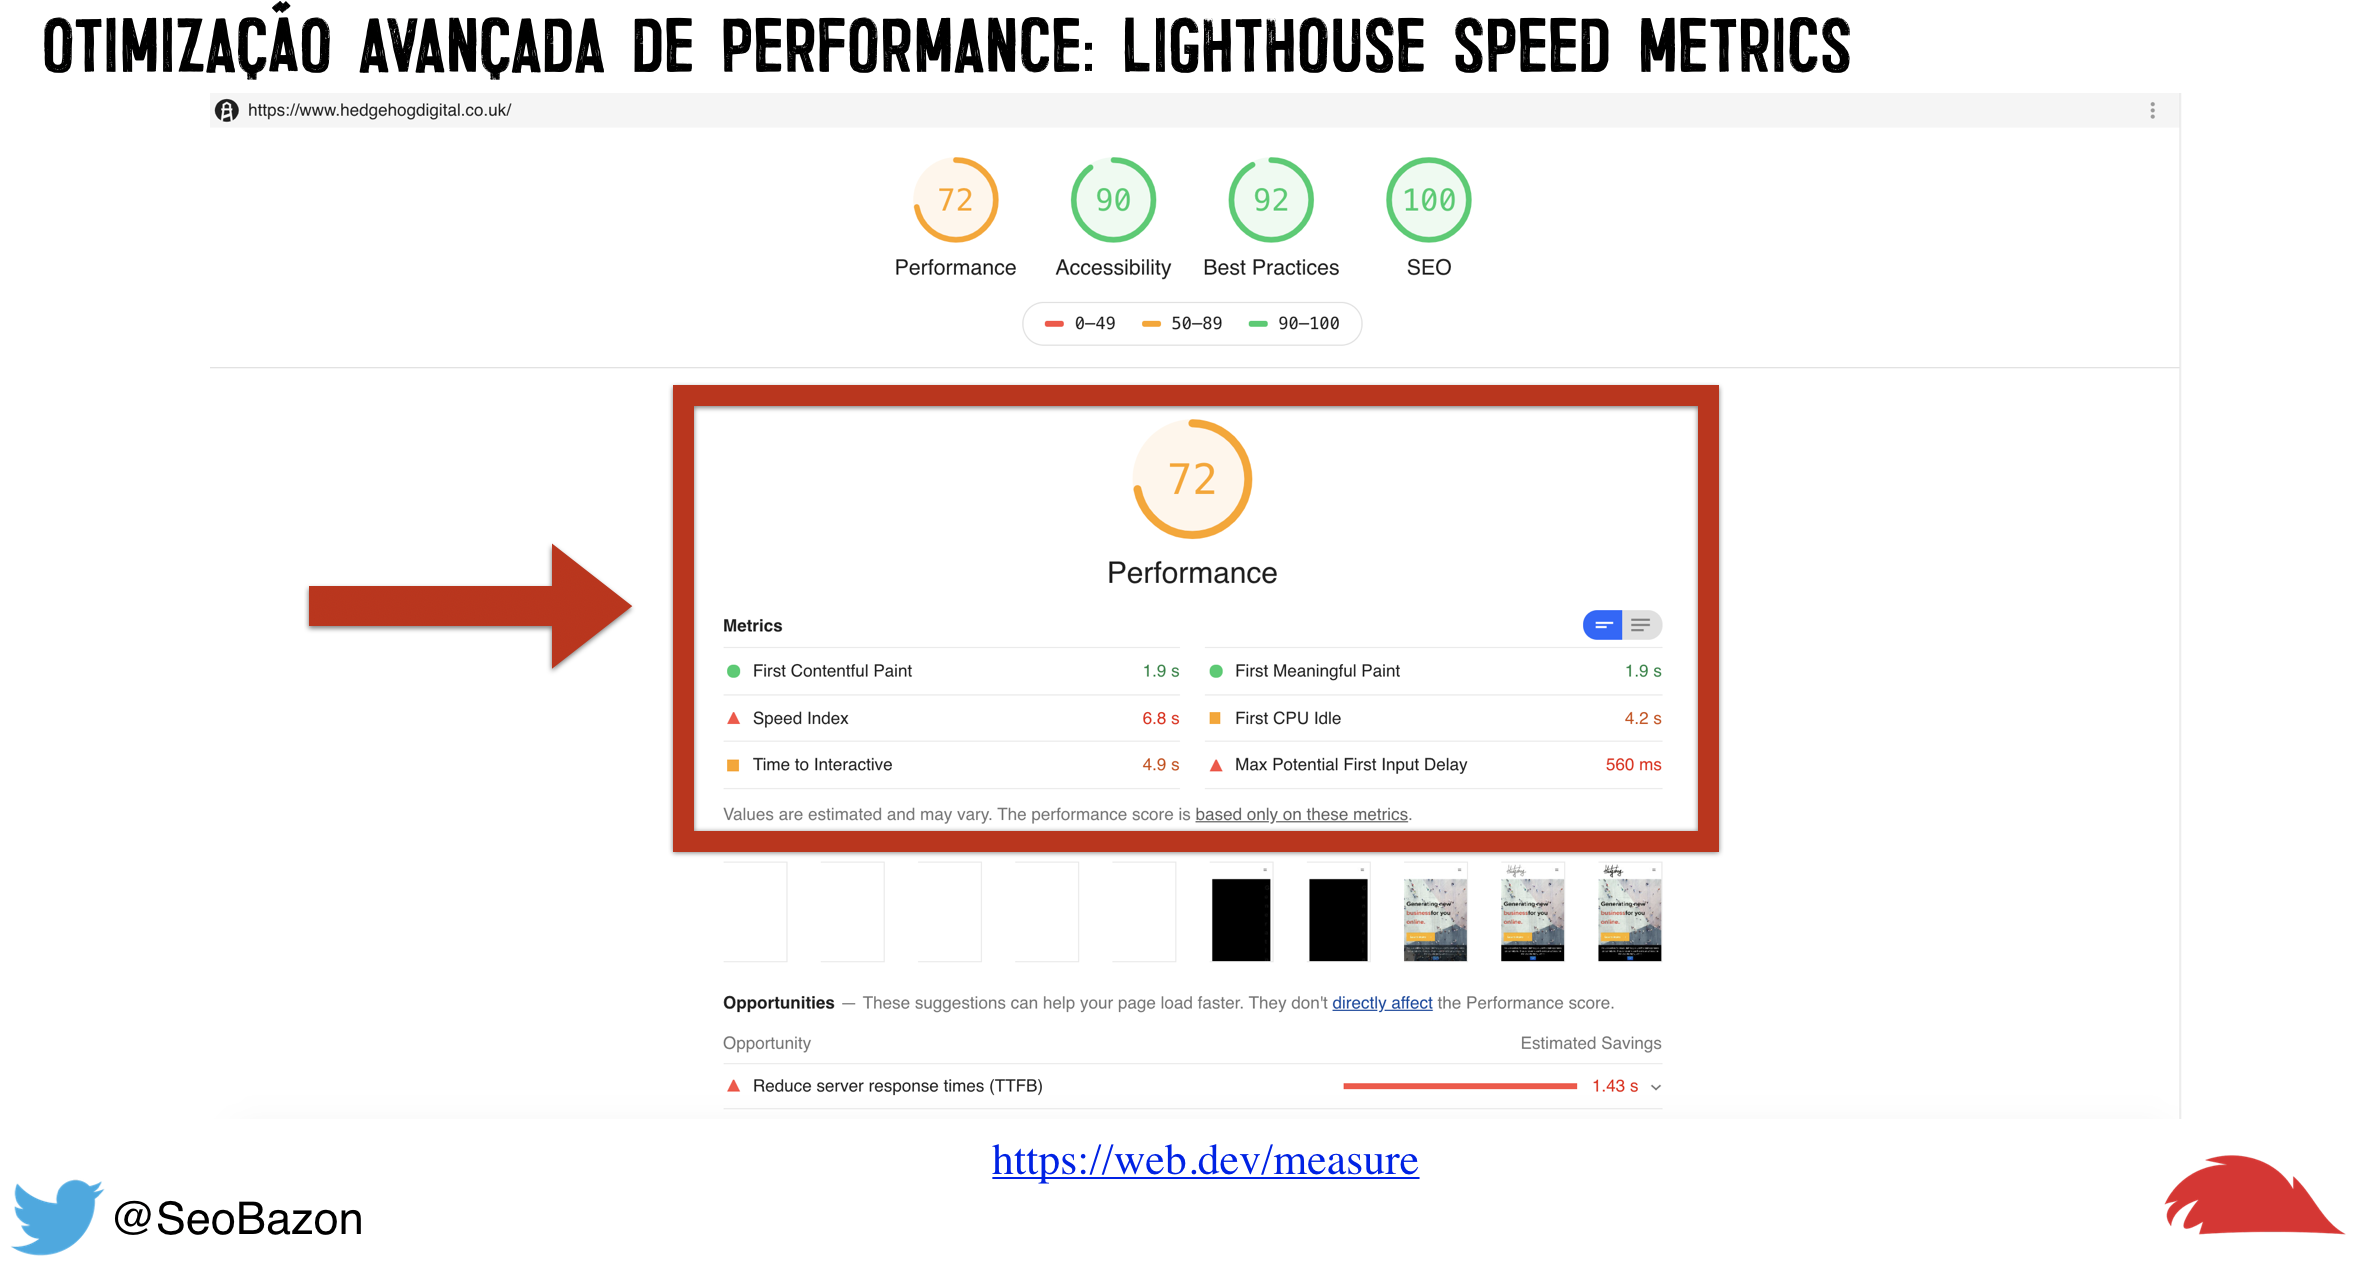 relatorio de performance to lighthouse via web dev